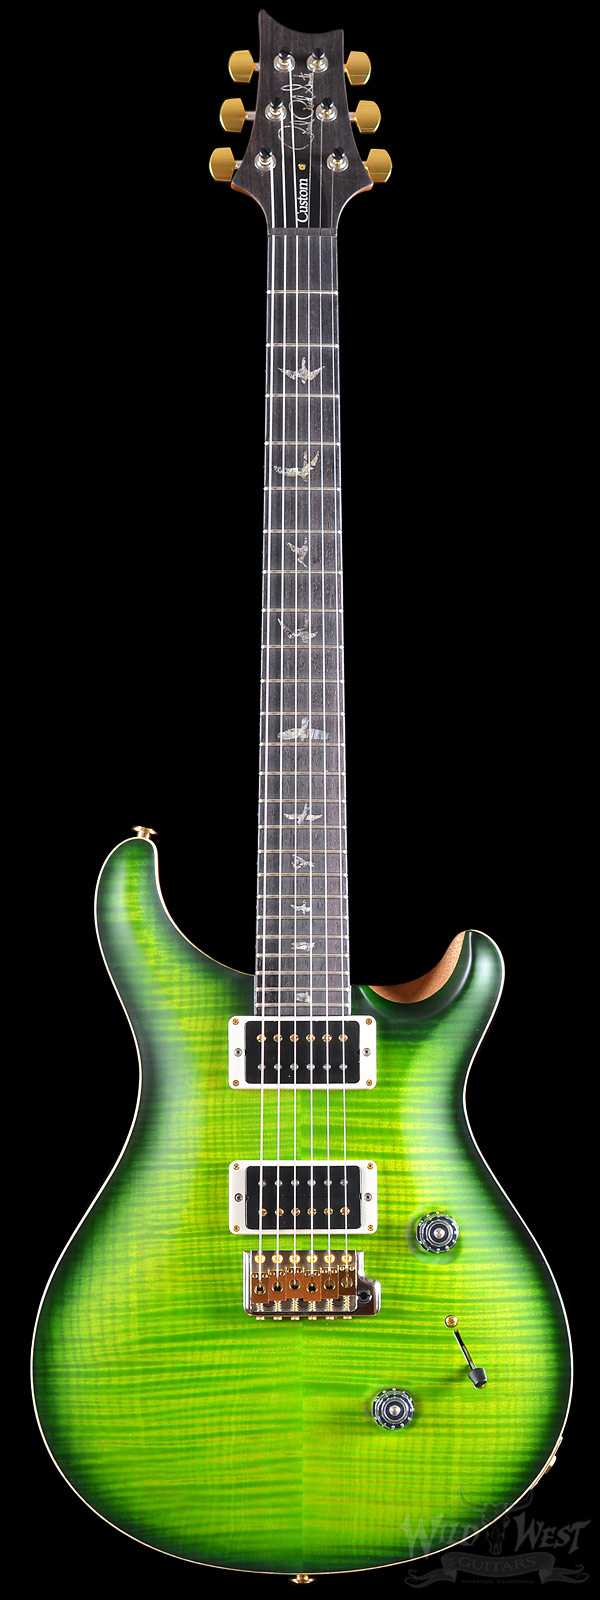 PRS Custom 24 Ten Top Satin Eriza Verde Smoked Burst